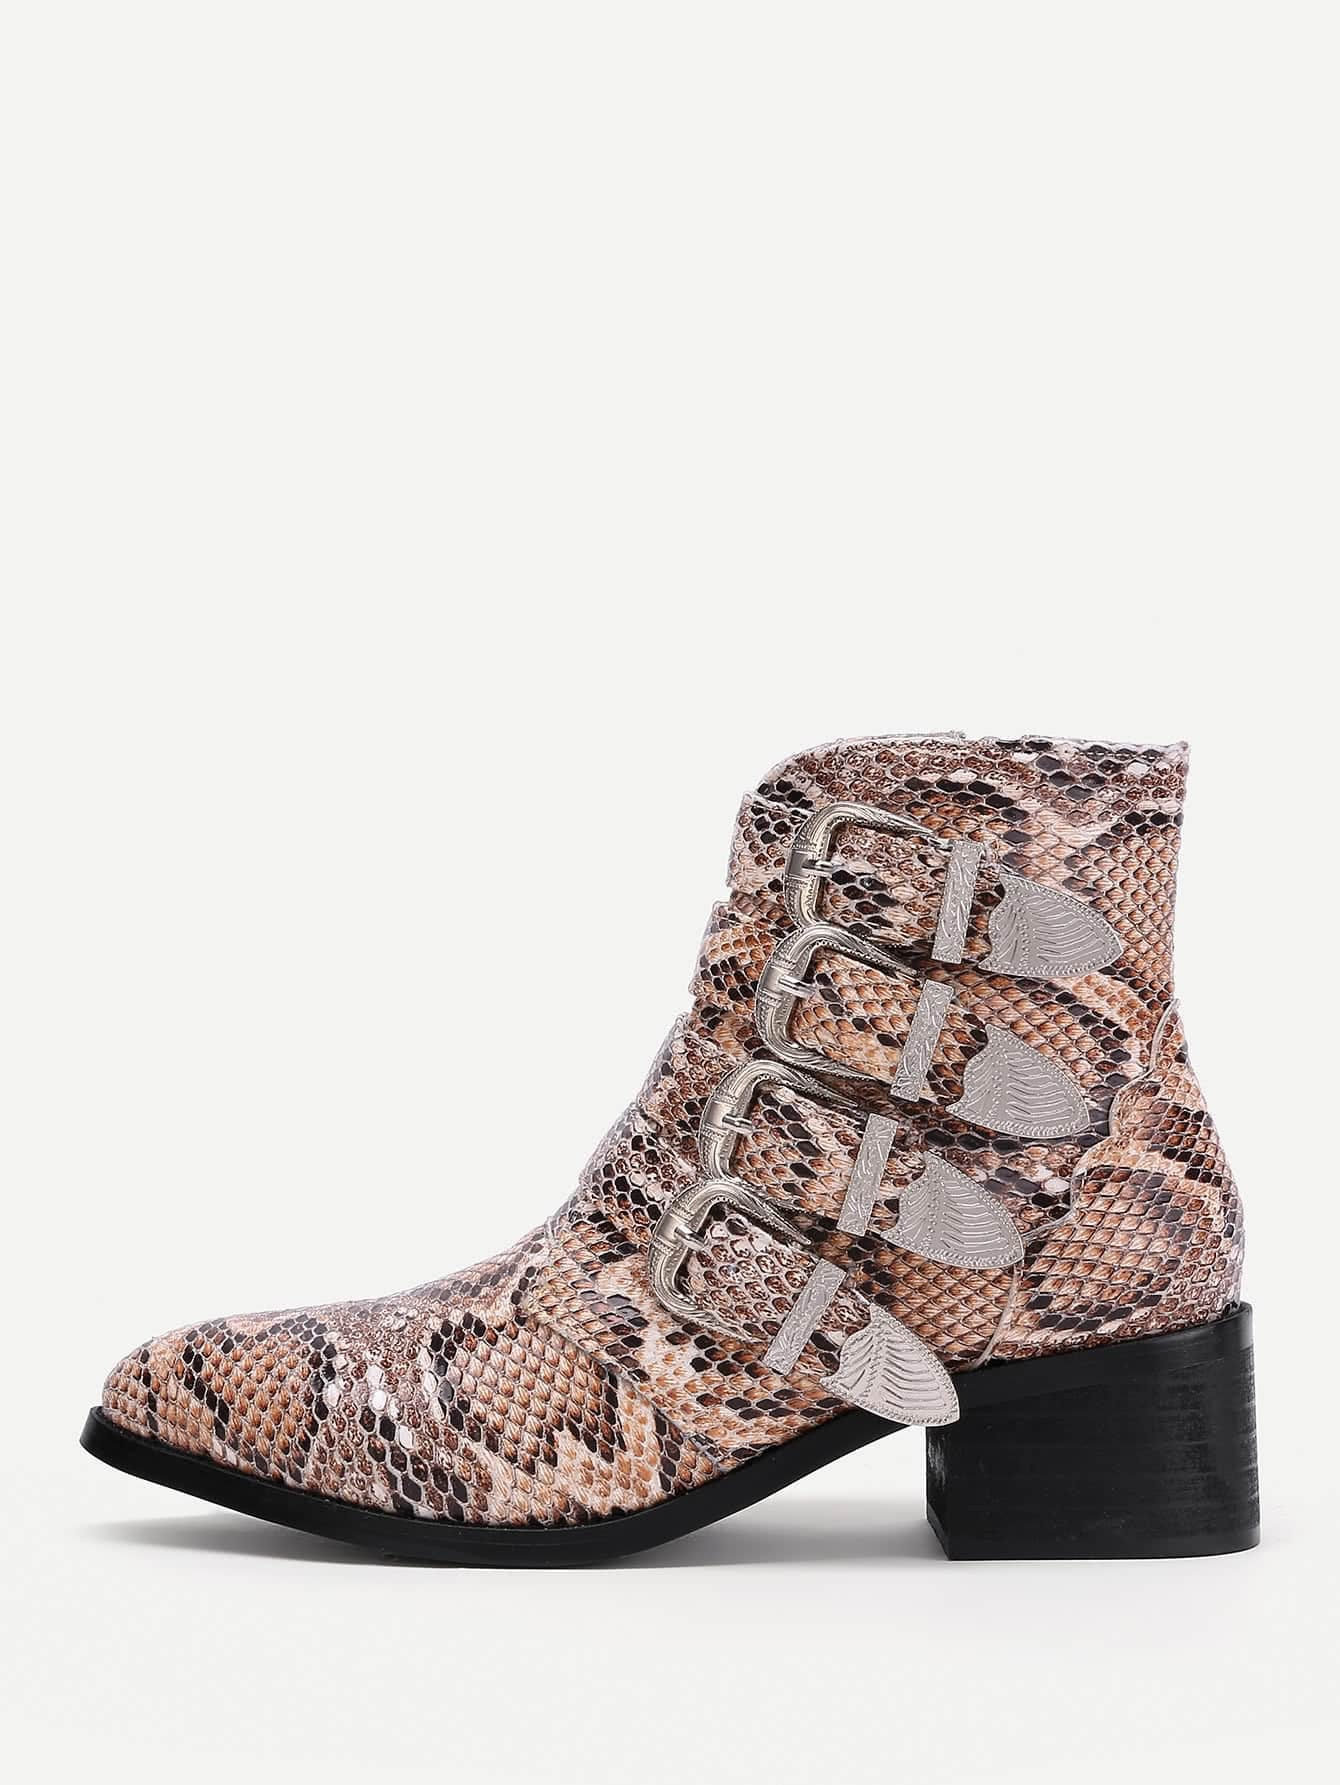 Buckle Decorated Snakeskin Print PU Ankle Boots